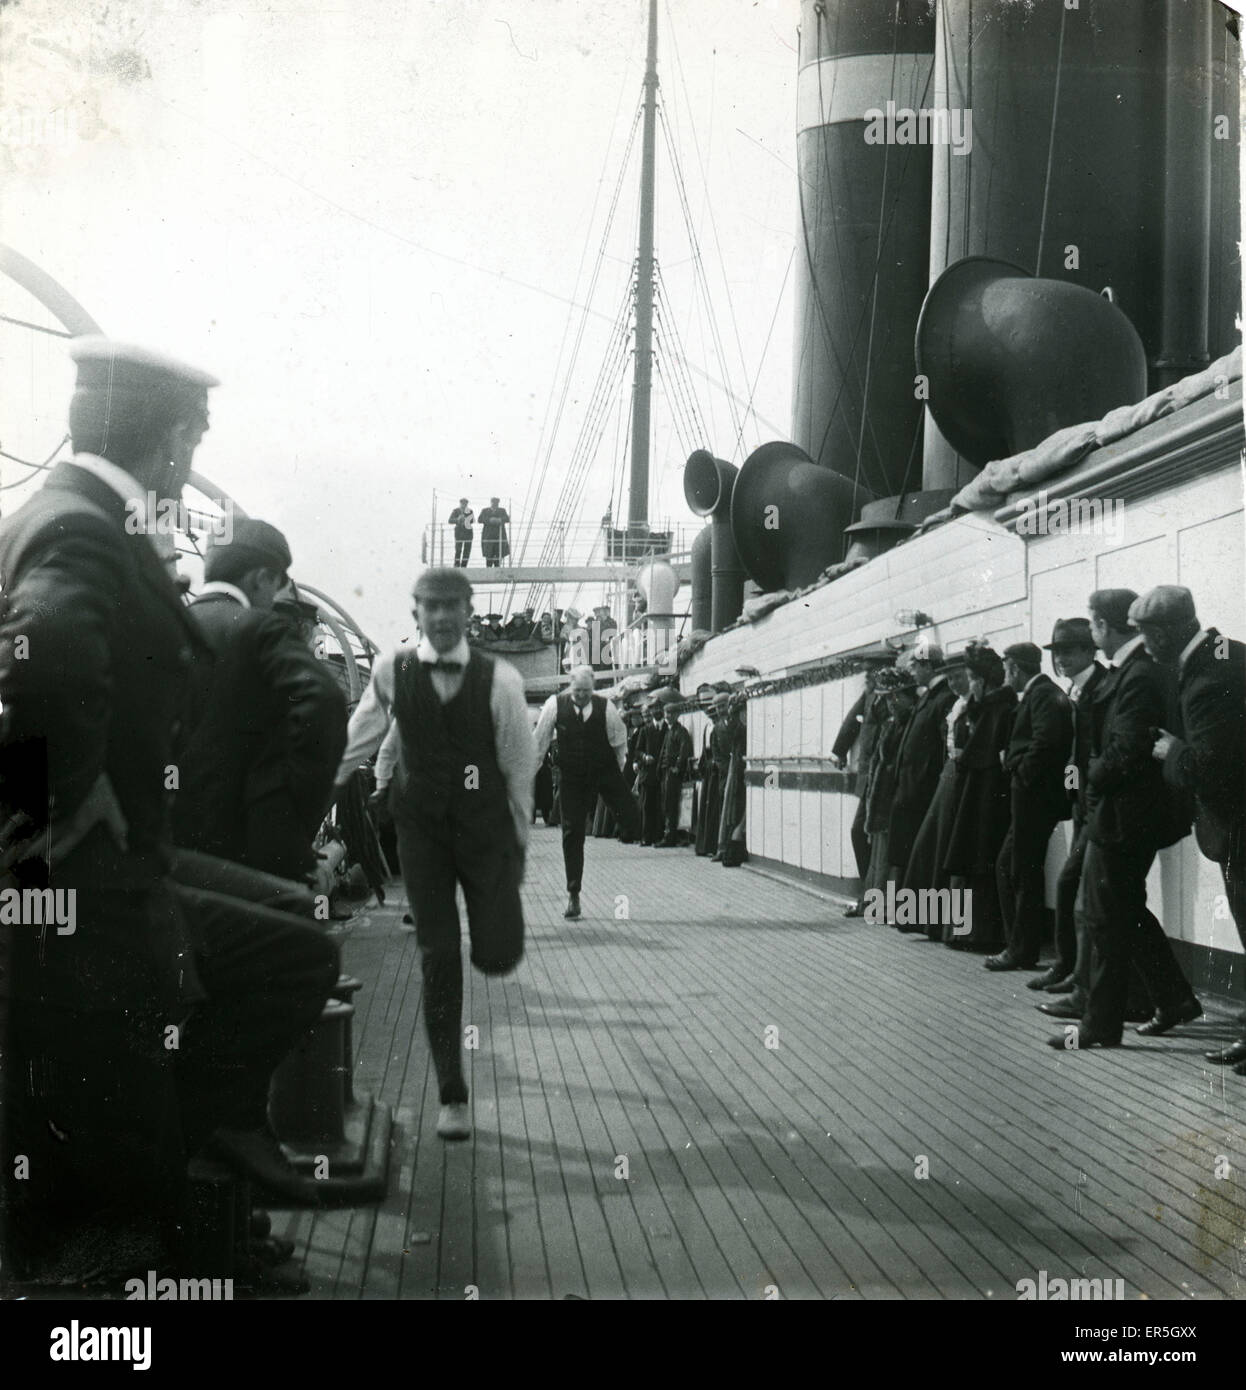 Victorians Racing on Deck of Ship, England.  1890s - Stock Image